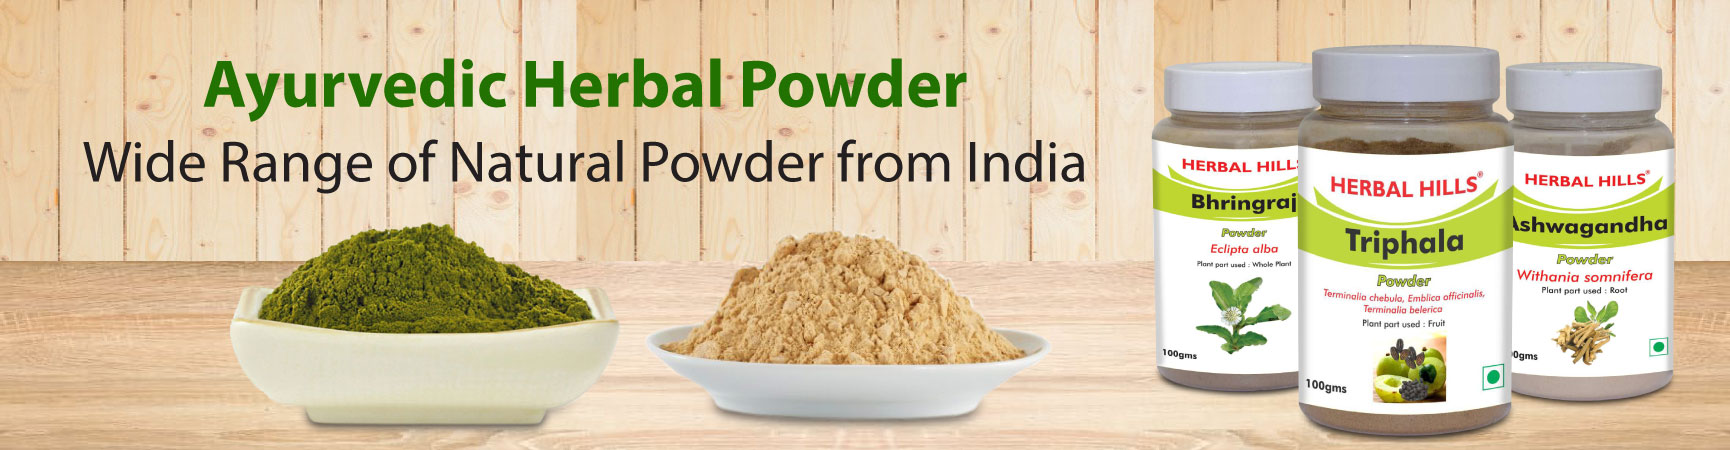 best ayurvedic products in india